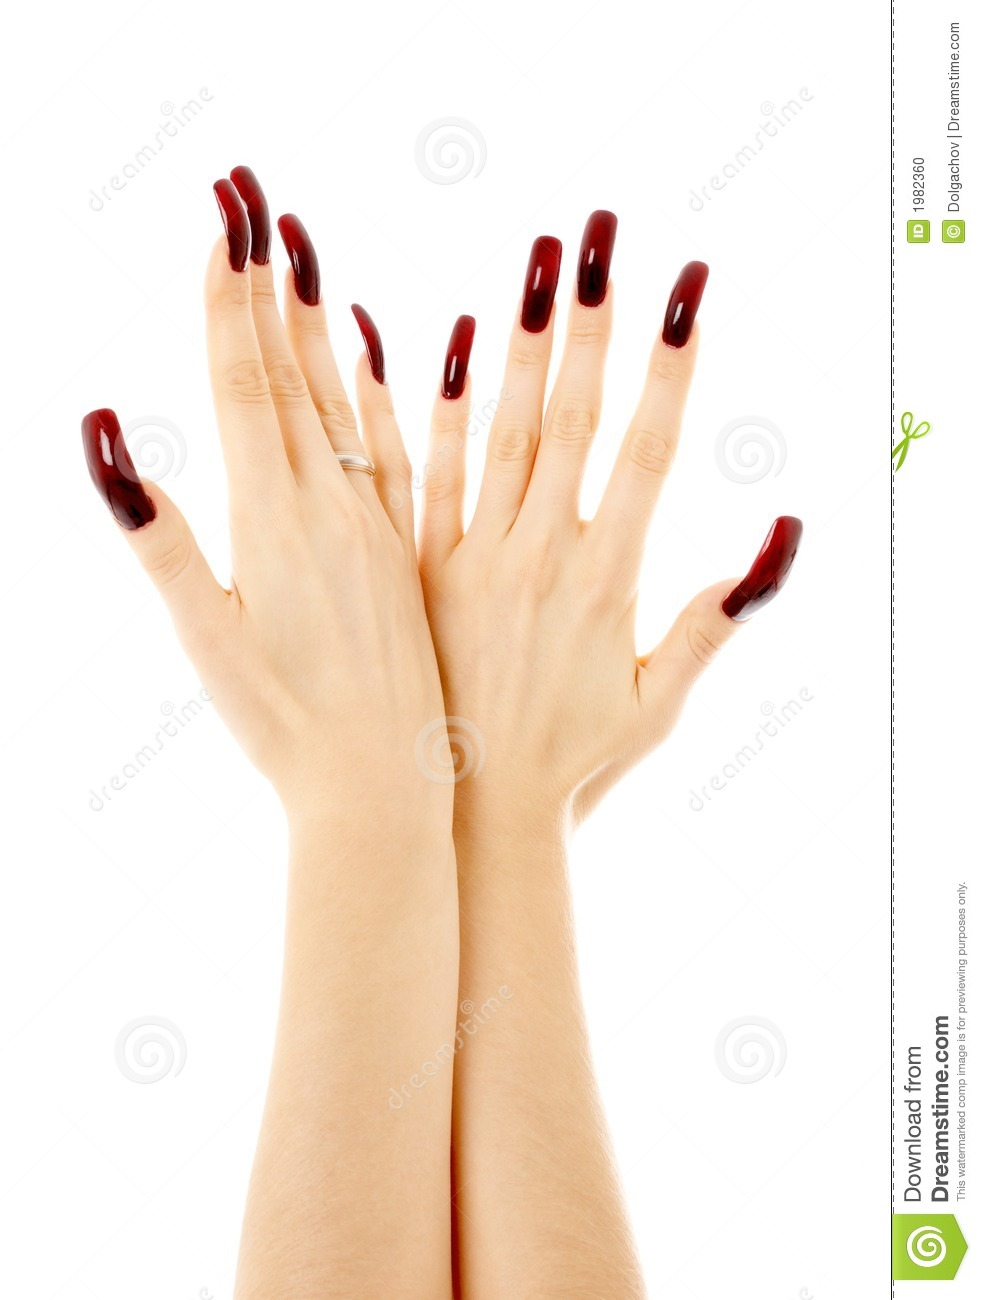 Two Hands With Long Acrylic Nails Stock Photo - Image of acrylic ...